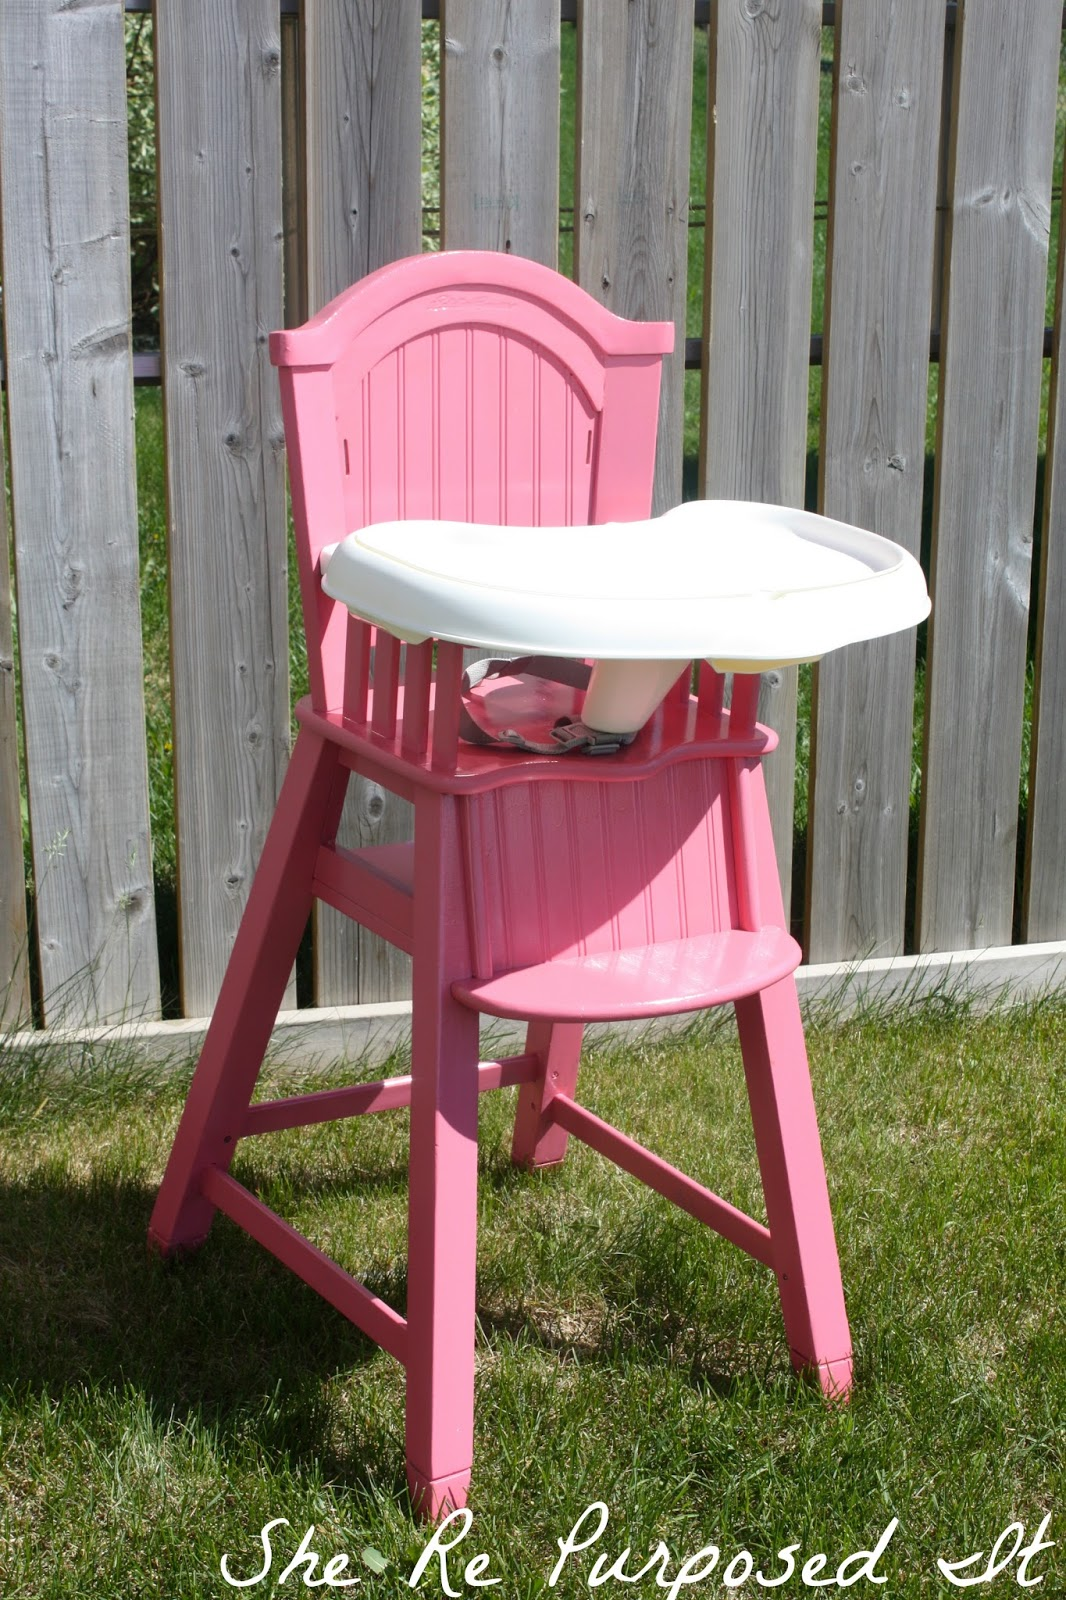 She Re-Purposed It: Pink Highchair